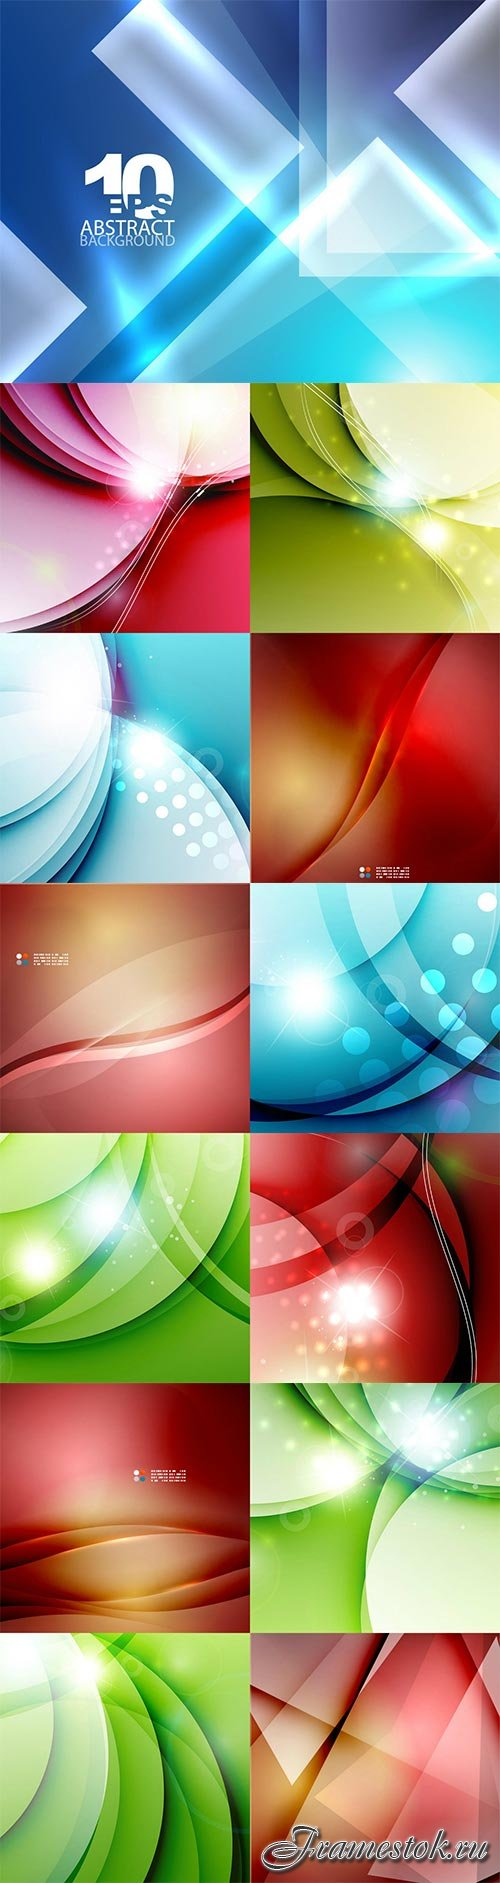 Bright colorful abstract backgrounds vector - 83